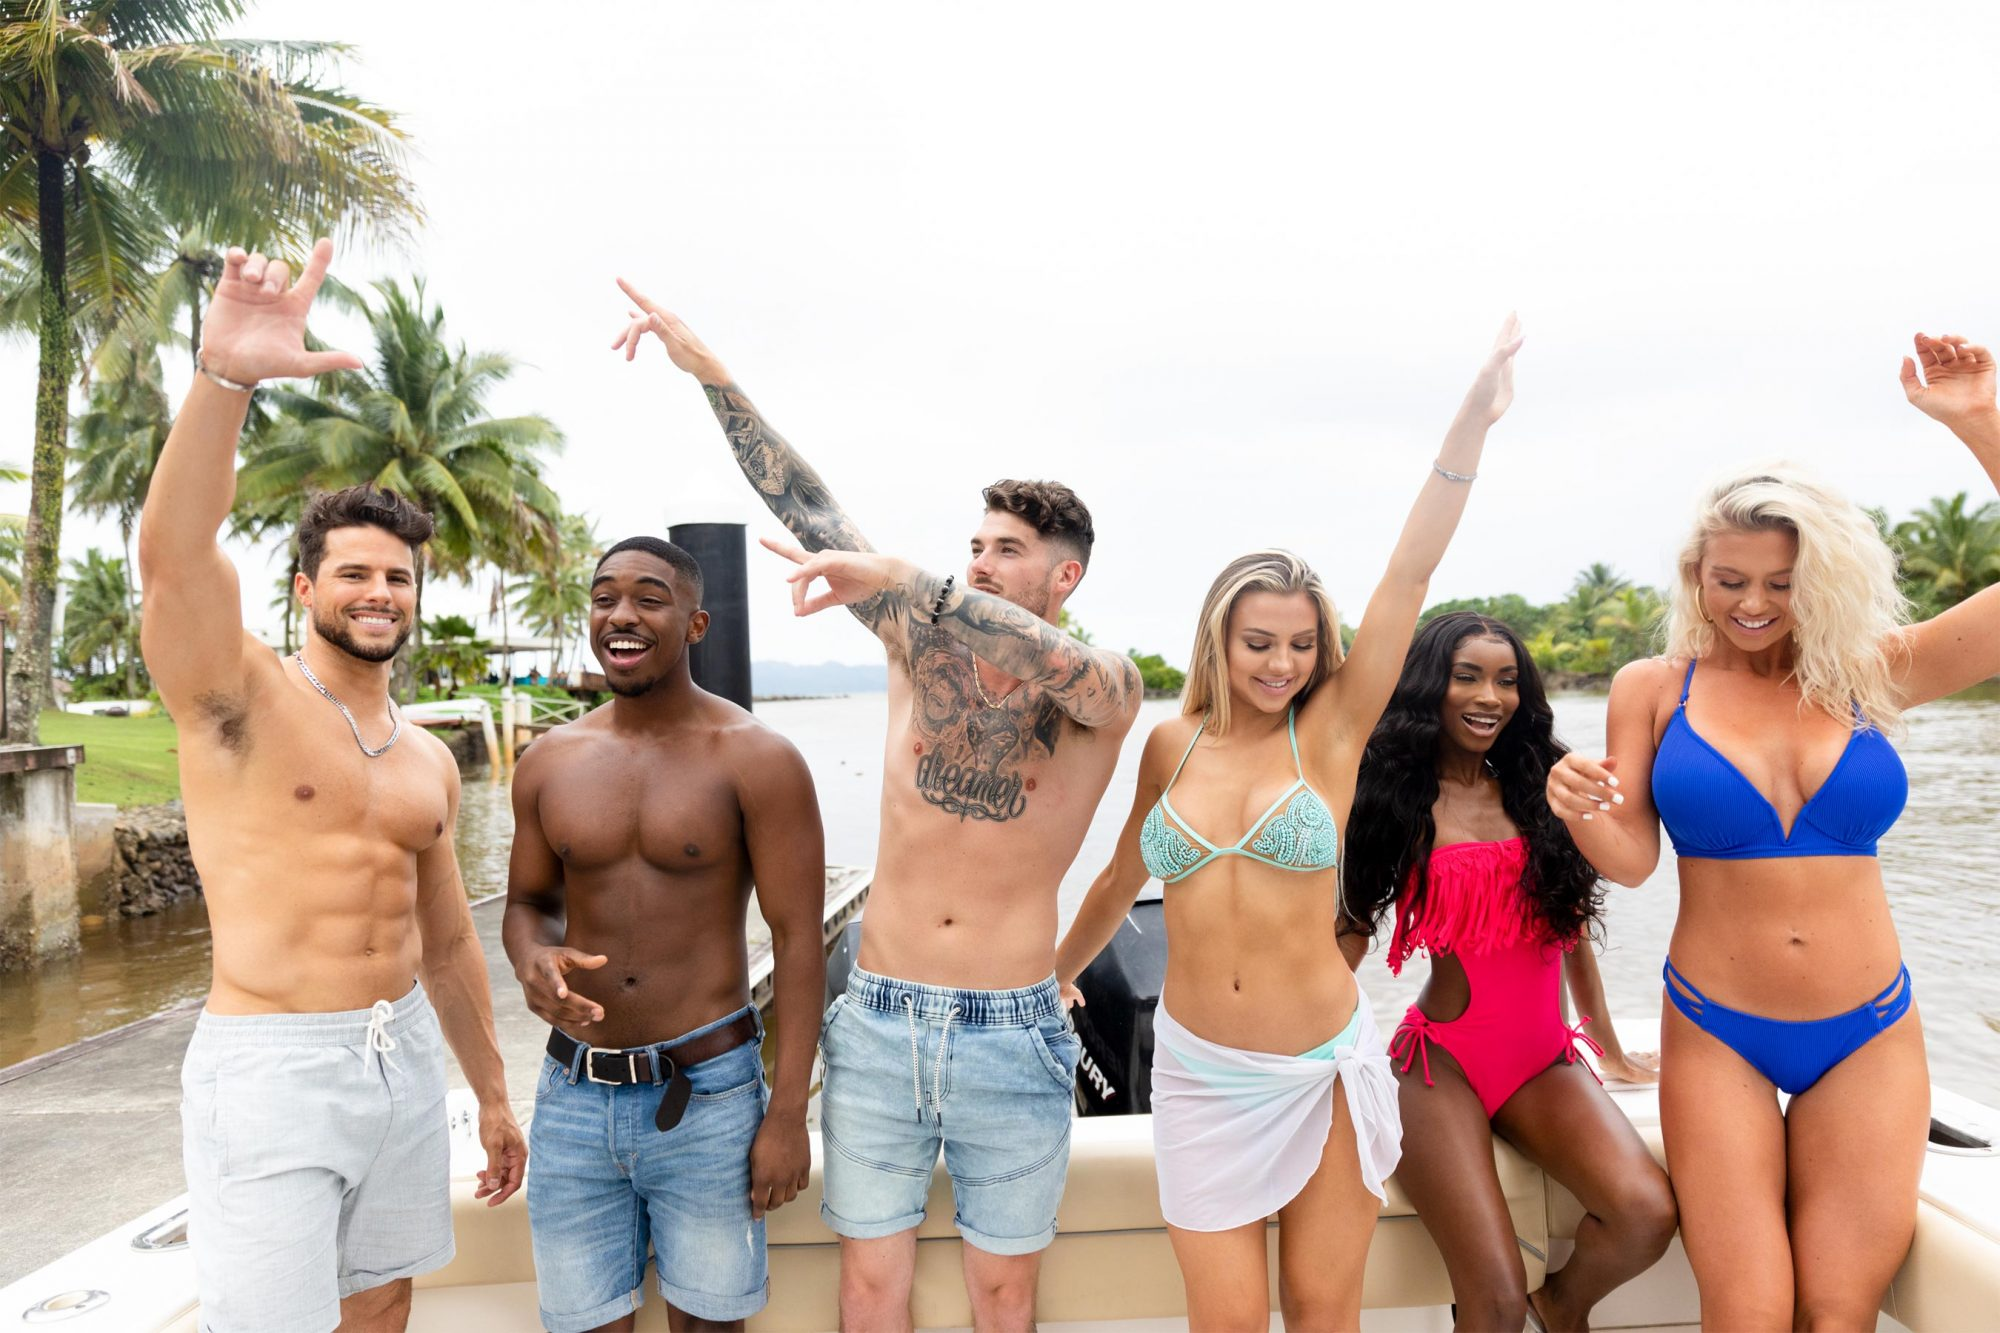 "Love Island - Pictured: George Johnson, Ray Gantt, Eric Hall, Marlisse ""Marli"" Tyndall, Aissata Diallo and Kelsey Jurewicz. The tenth episode of Love Island airs, Monday, July 22 (8:00-9:00 PM, ET/PT). New one-hour episodes continue every weeknight through Wednesday, August 7 (8:00-9:00 PM, ET/PT). Photo: Colin Young-Wolff/CBS Entertainment ©2019 CBS Broadcasting, Inc. All Rights Reserved."